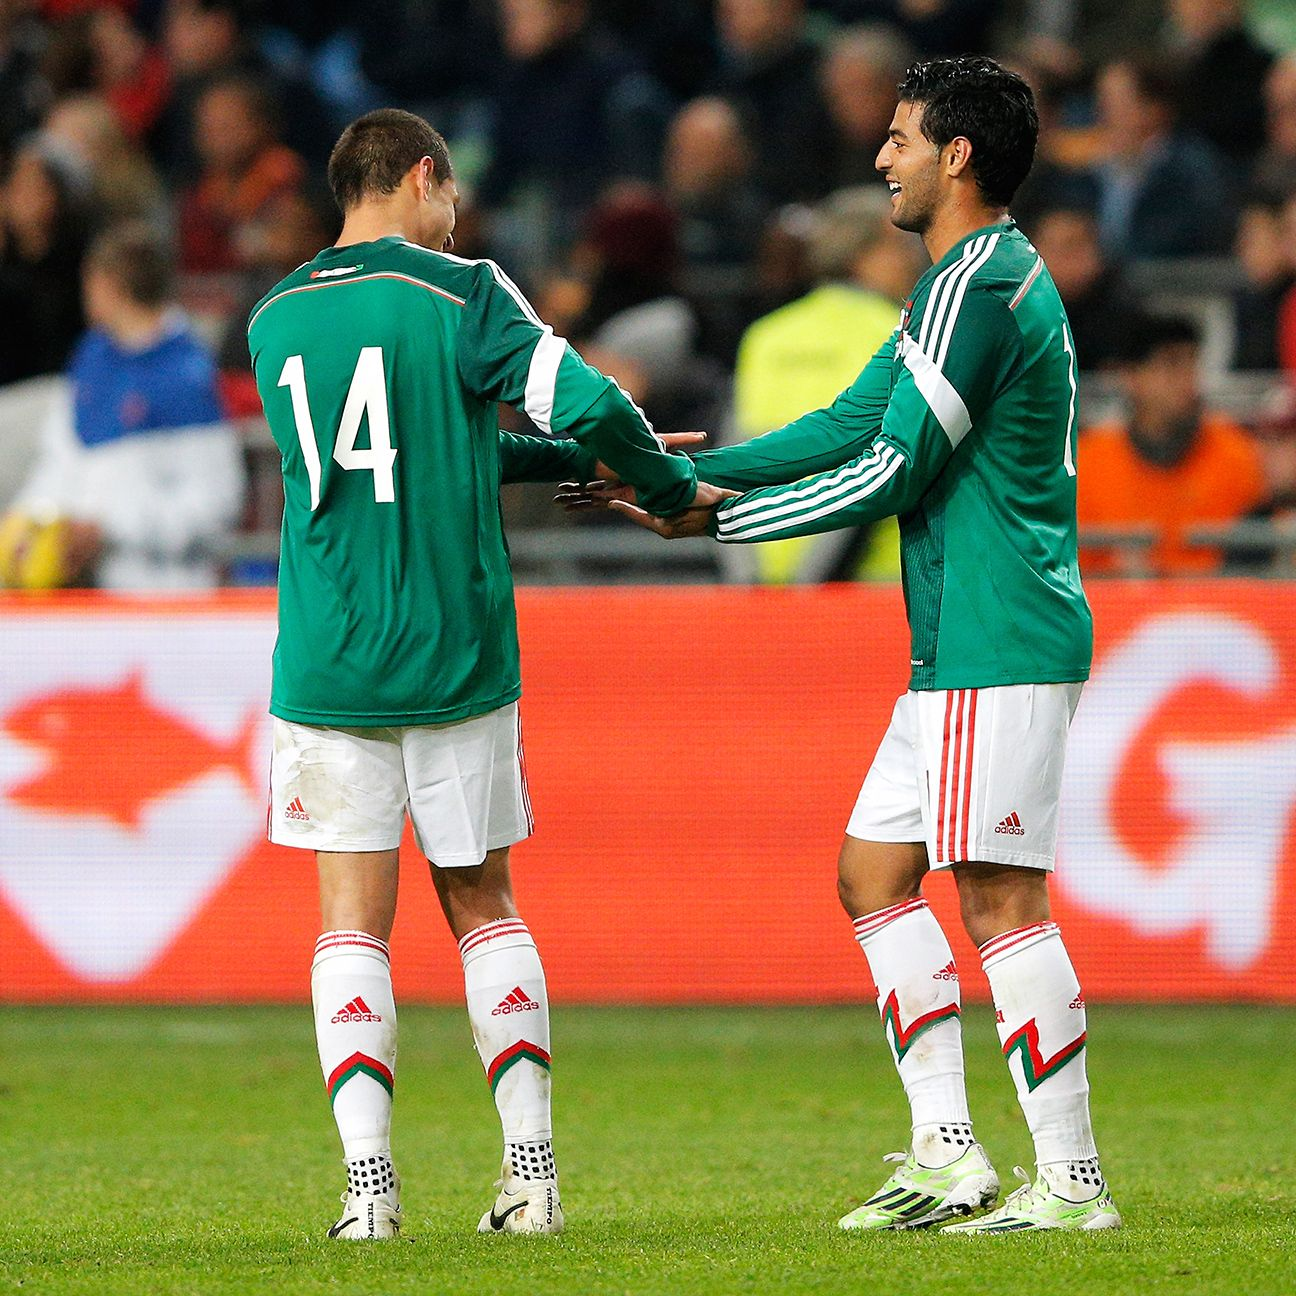 The chemistry between strikers Chicharito Hernandez and Carlos Vela was clear for all to see in El Tri's 3-2 win versus the Netherlands.